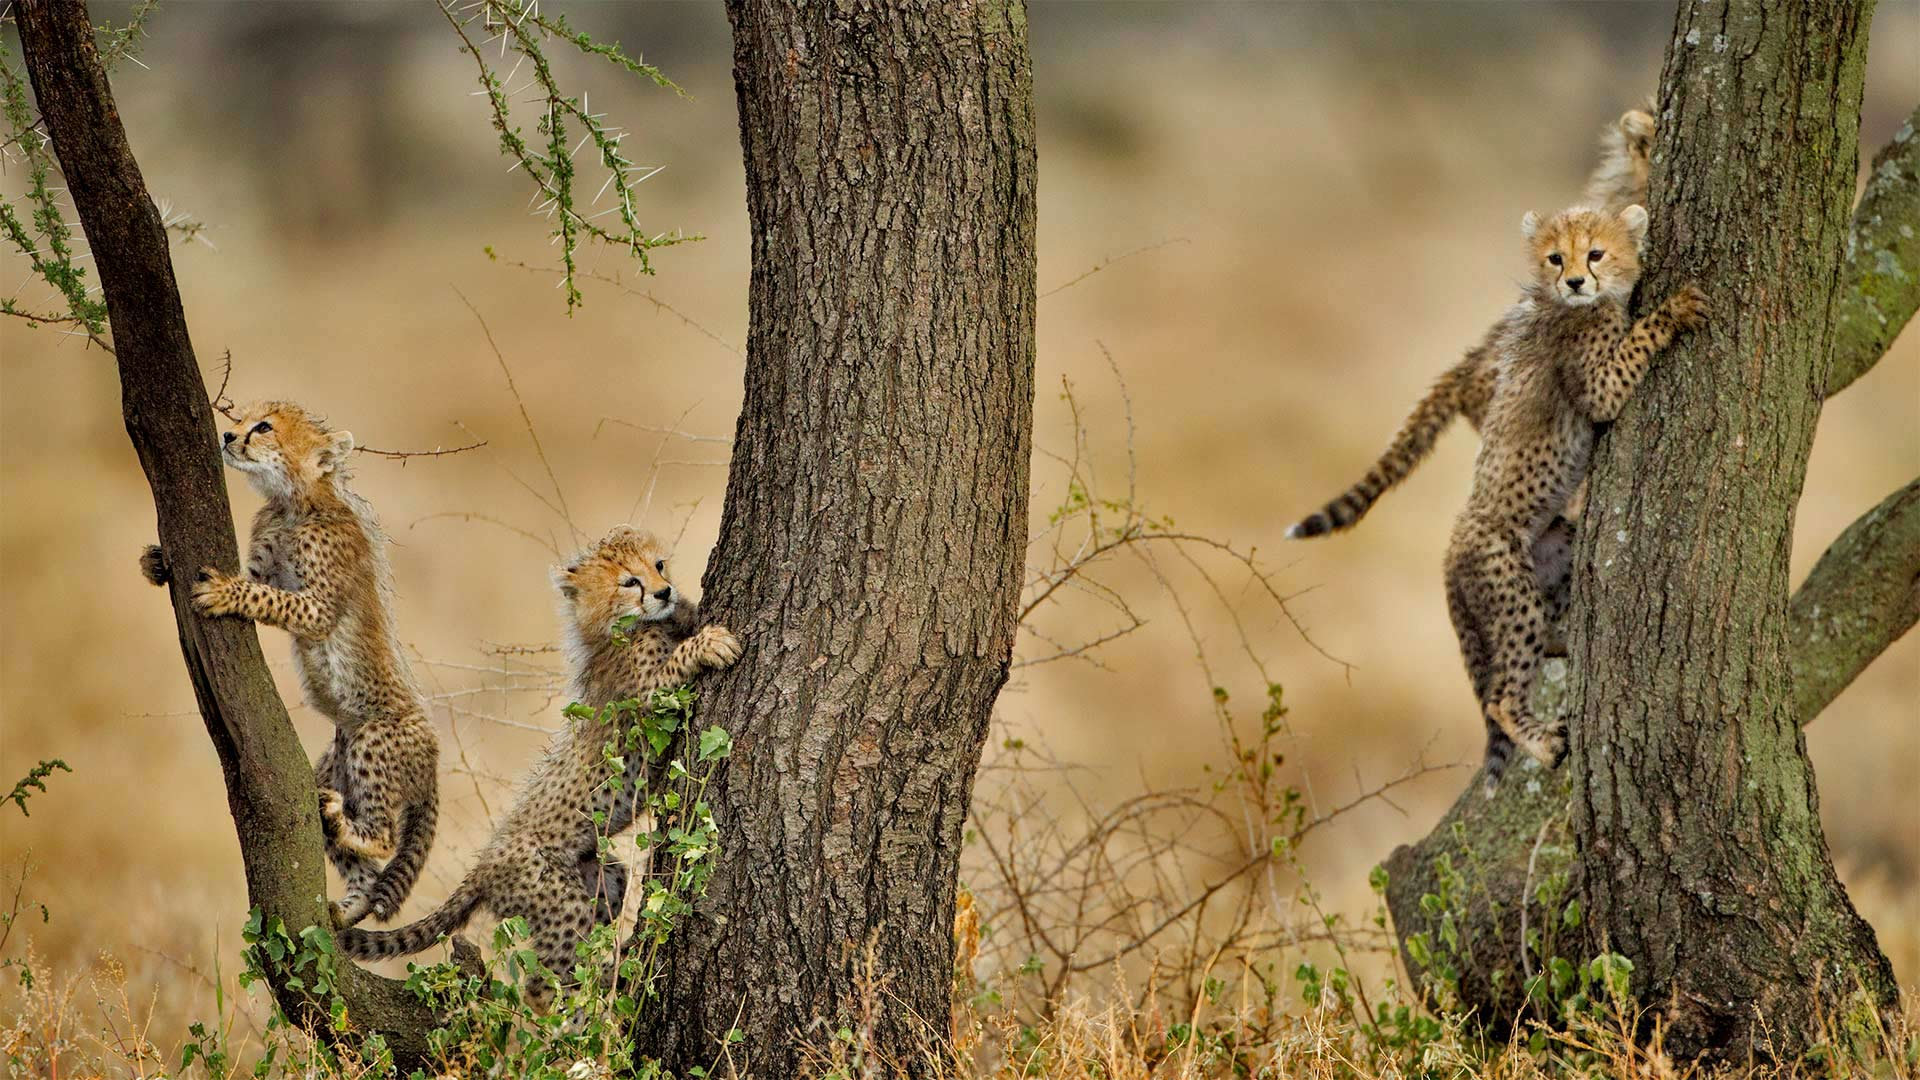 Cheetah cubs climbing acacia trees in the Ngorongoro Conservation Area, Tanzania (© Paul Souders/Getty Images)(Bing United States)